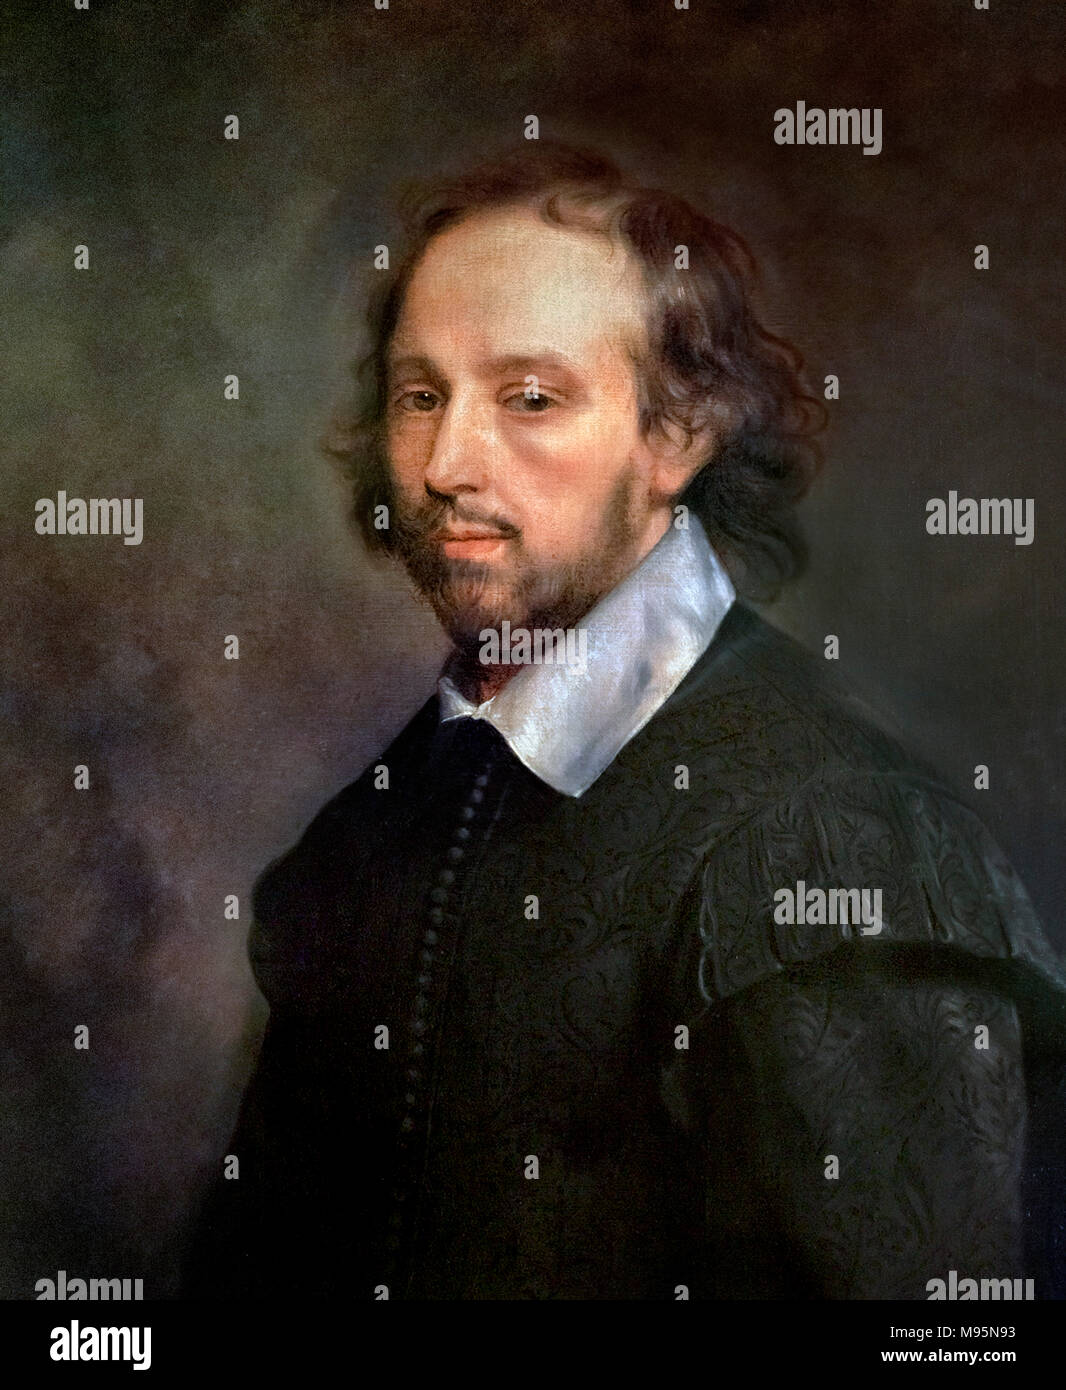 William Shakespeare. Portrait of Shakespeare by Gerard Soest, reproduction of a c.1667 painting. - Stock Image